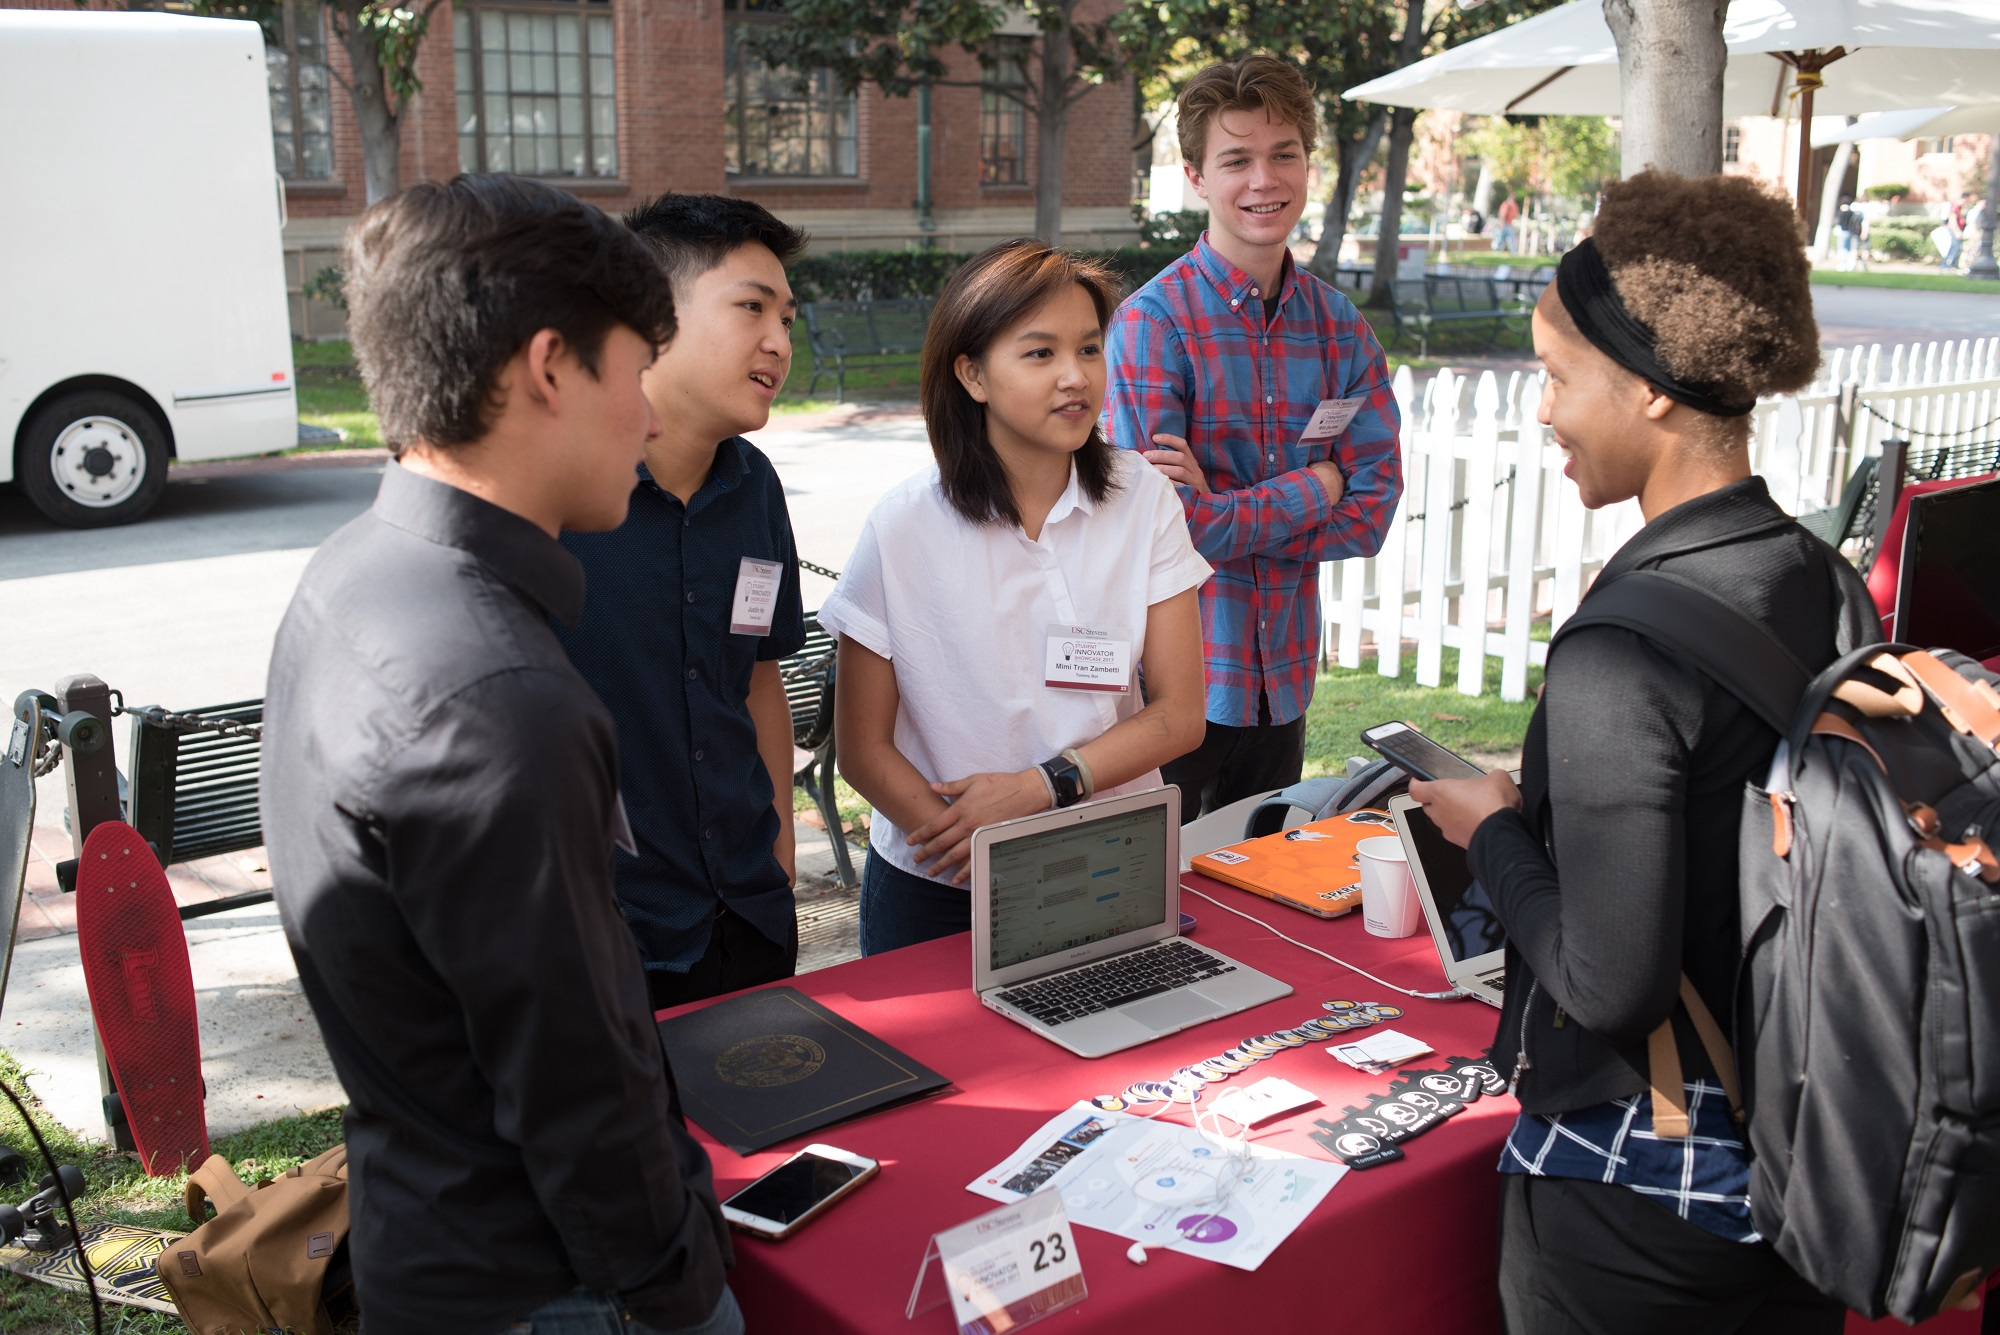 Student team talking to Showcase attendee